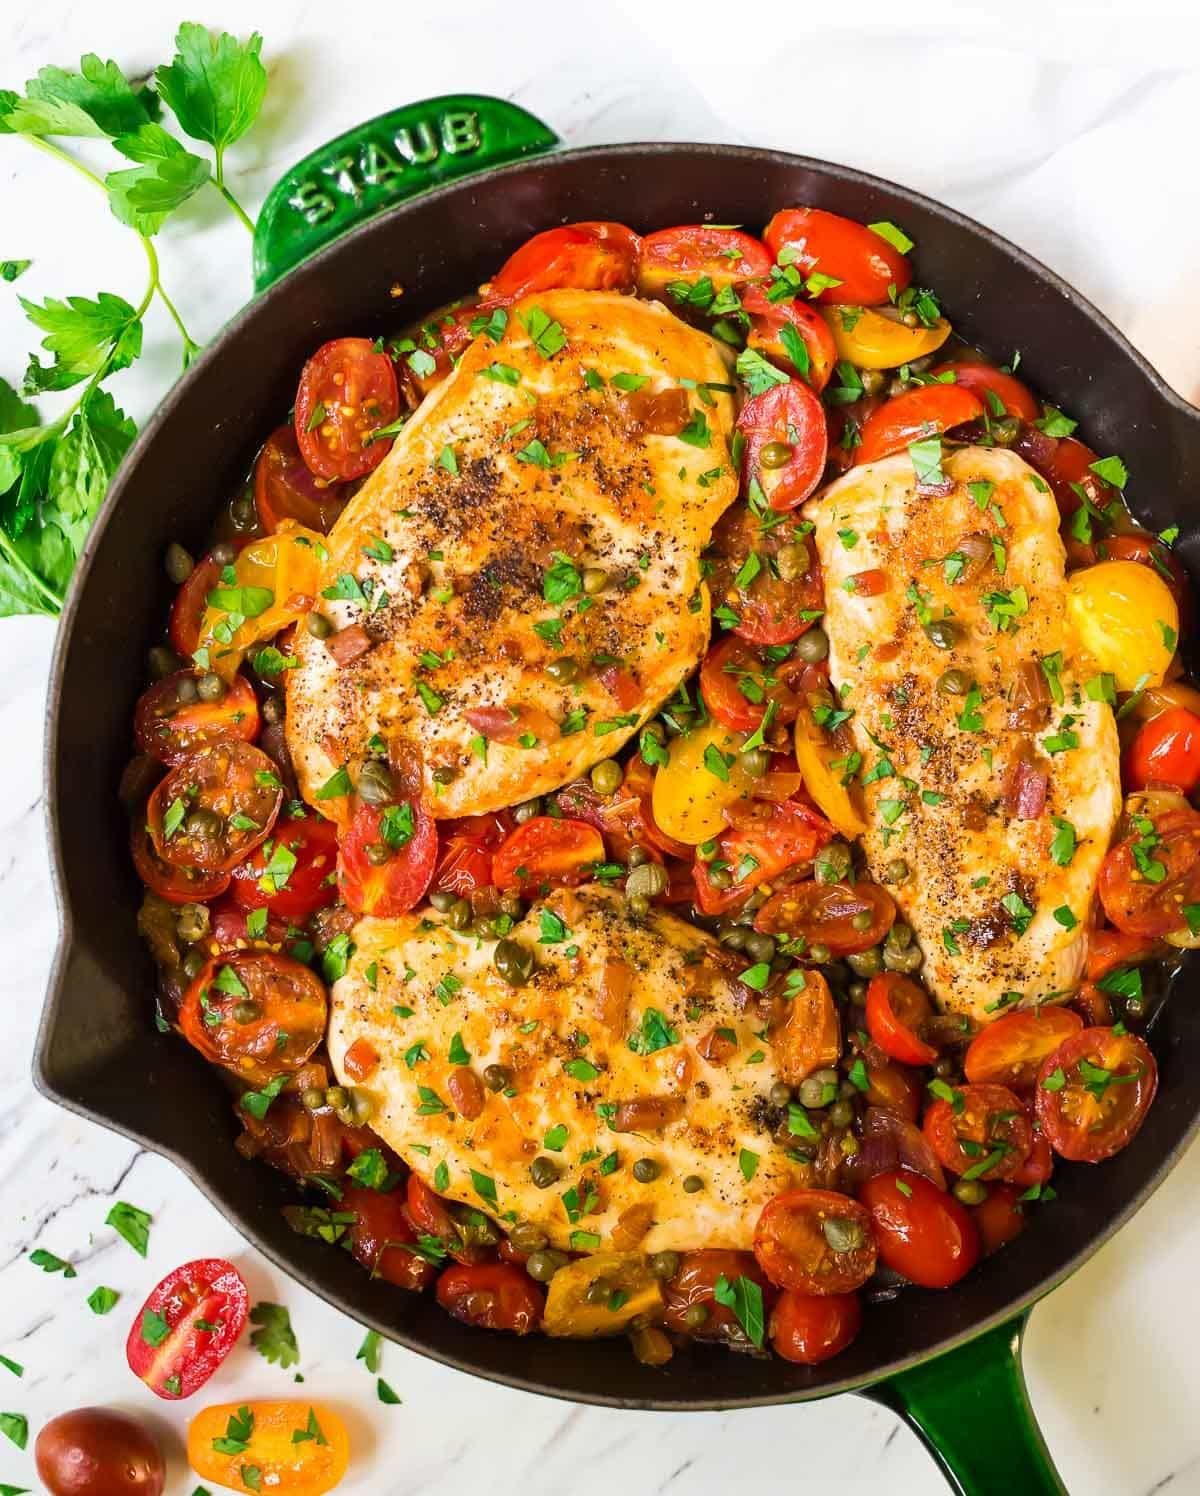 Chicken-and-Tomatoes-with-Capers-600x748@2x.jpg